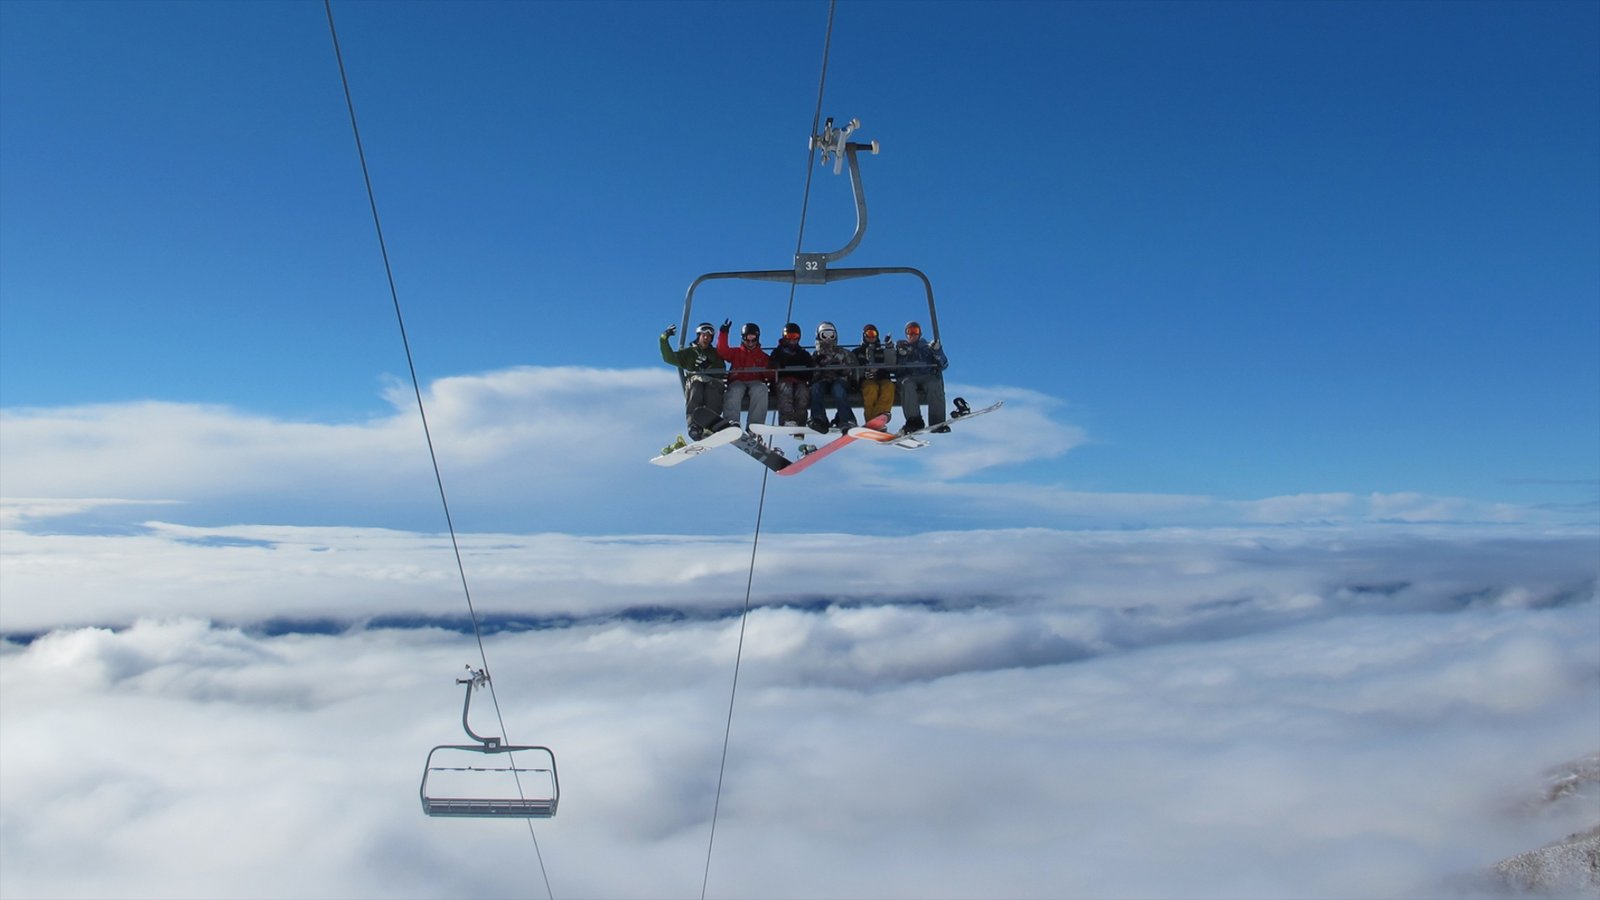 Treble Cone featuring a gondola as well as a small group of people